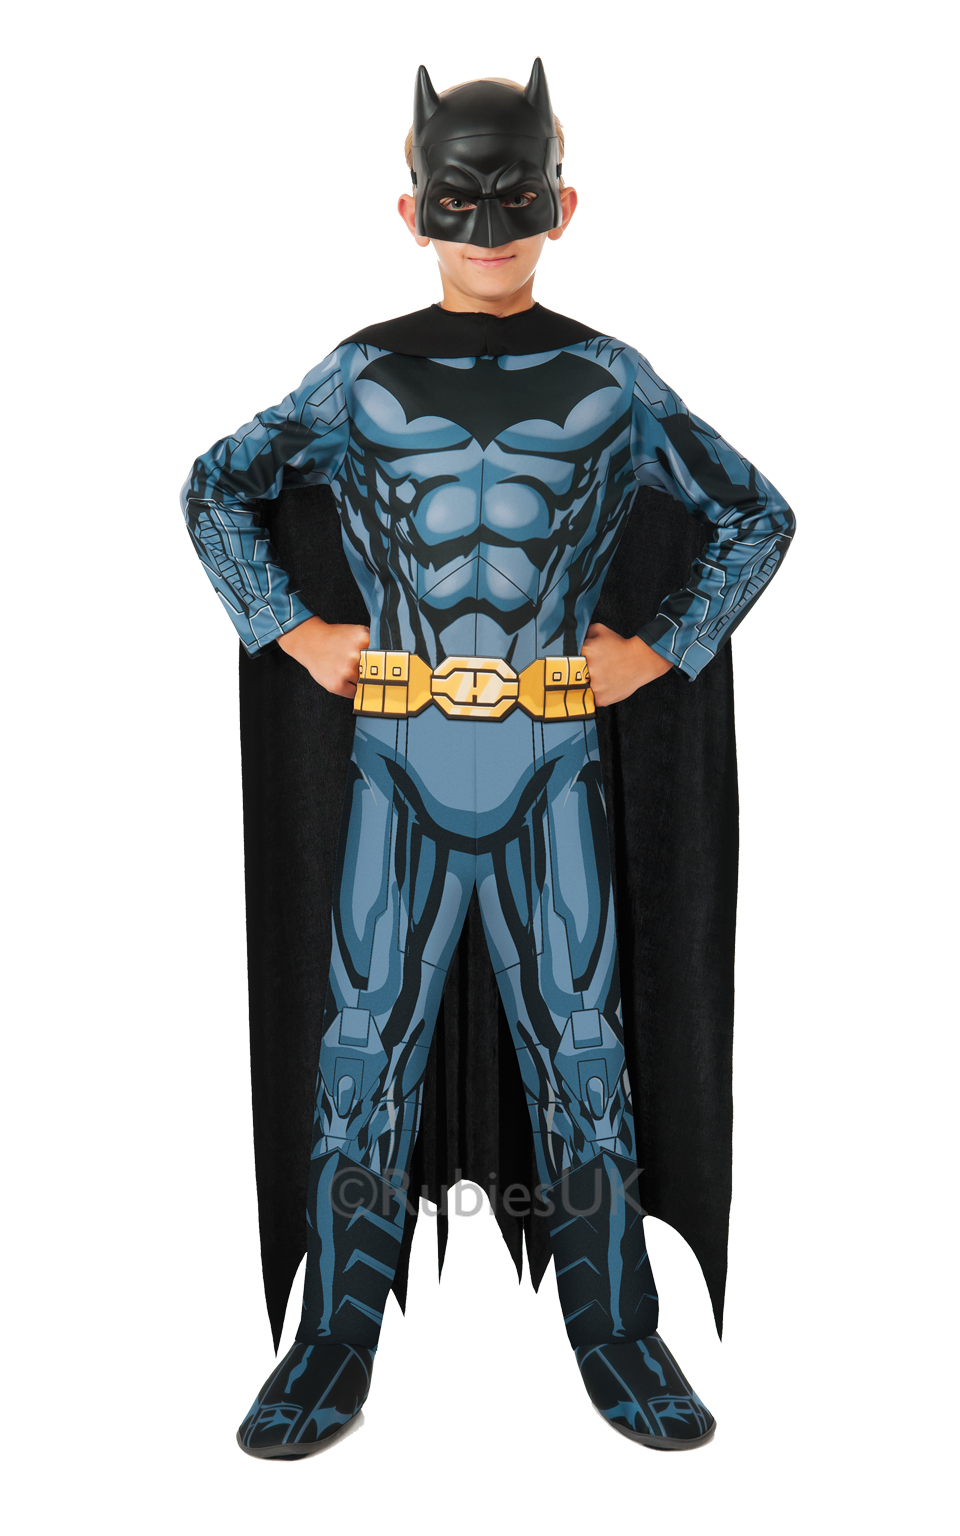 Grand Heritage Batman Costume. £ The Batman OppoSuit Costume. £ Dawn of Justice Batman Mask. £ Batgirl Corset Costume. £ Batman Full Mask. £ Kids Batgirl Costume If you want to browse our full list of Superhero Fancy Dress, fly on over this way! Join our newsletter and get monthly discounts, ideas and.